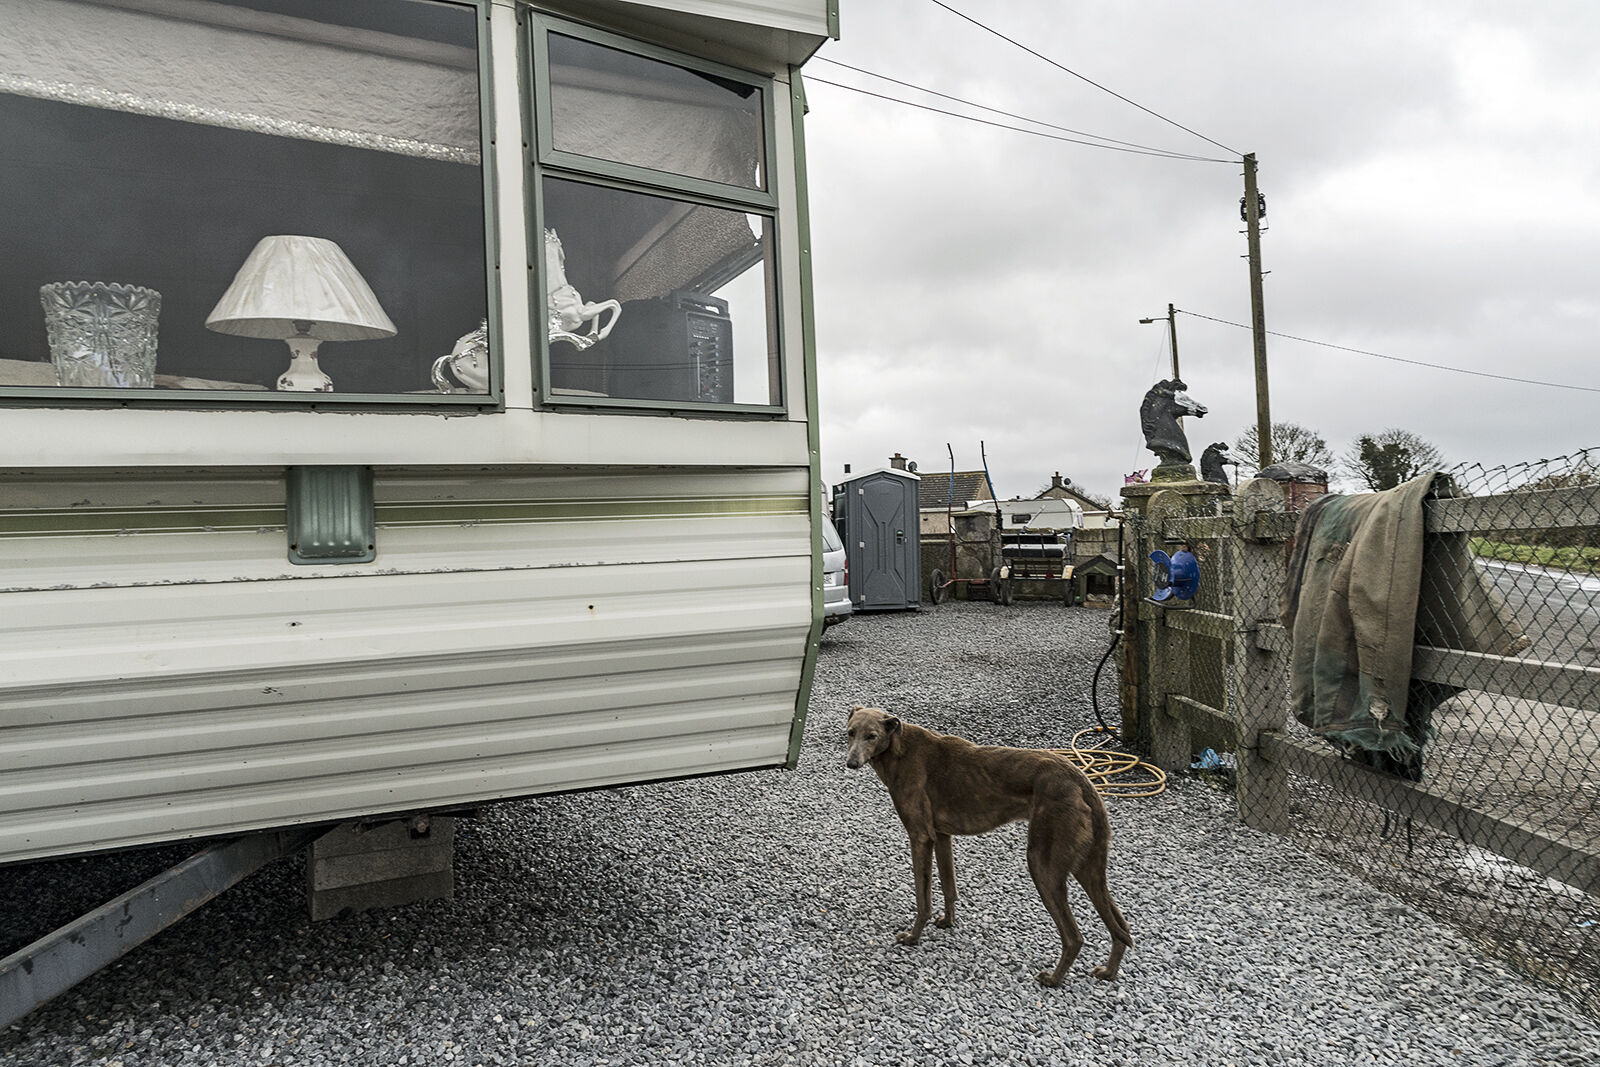 Lurcher at Reilly's Campsite, Tipperary, Ireland 2020